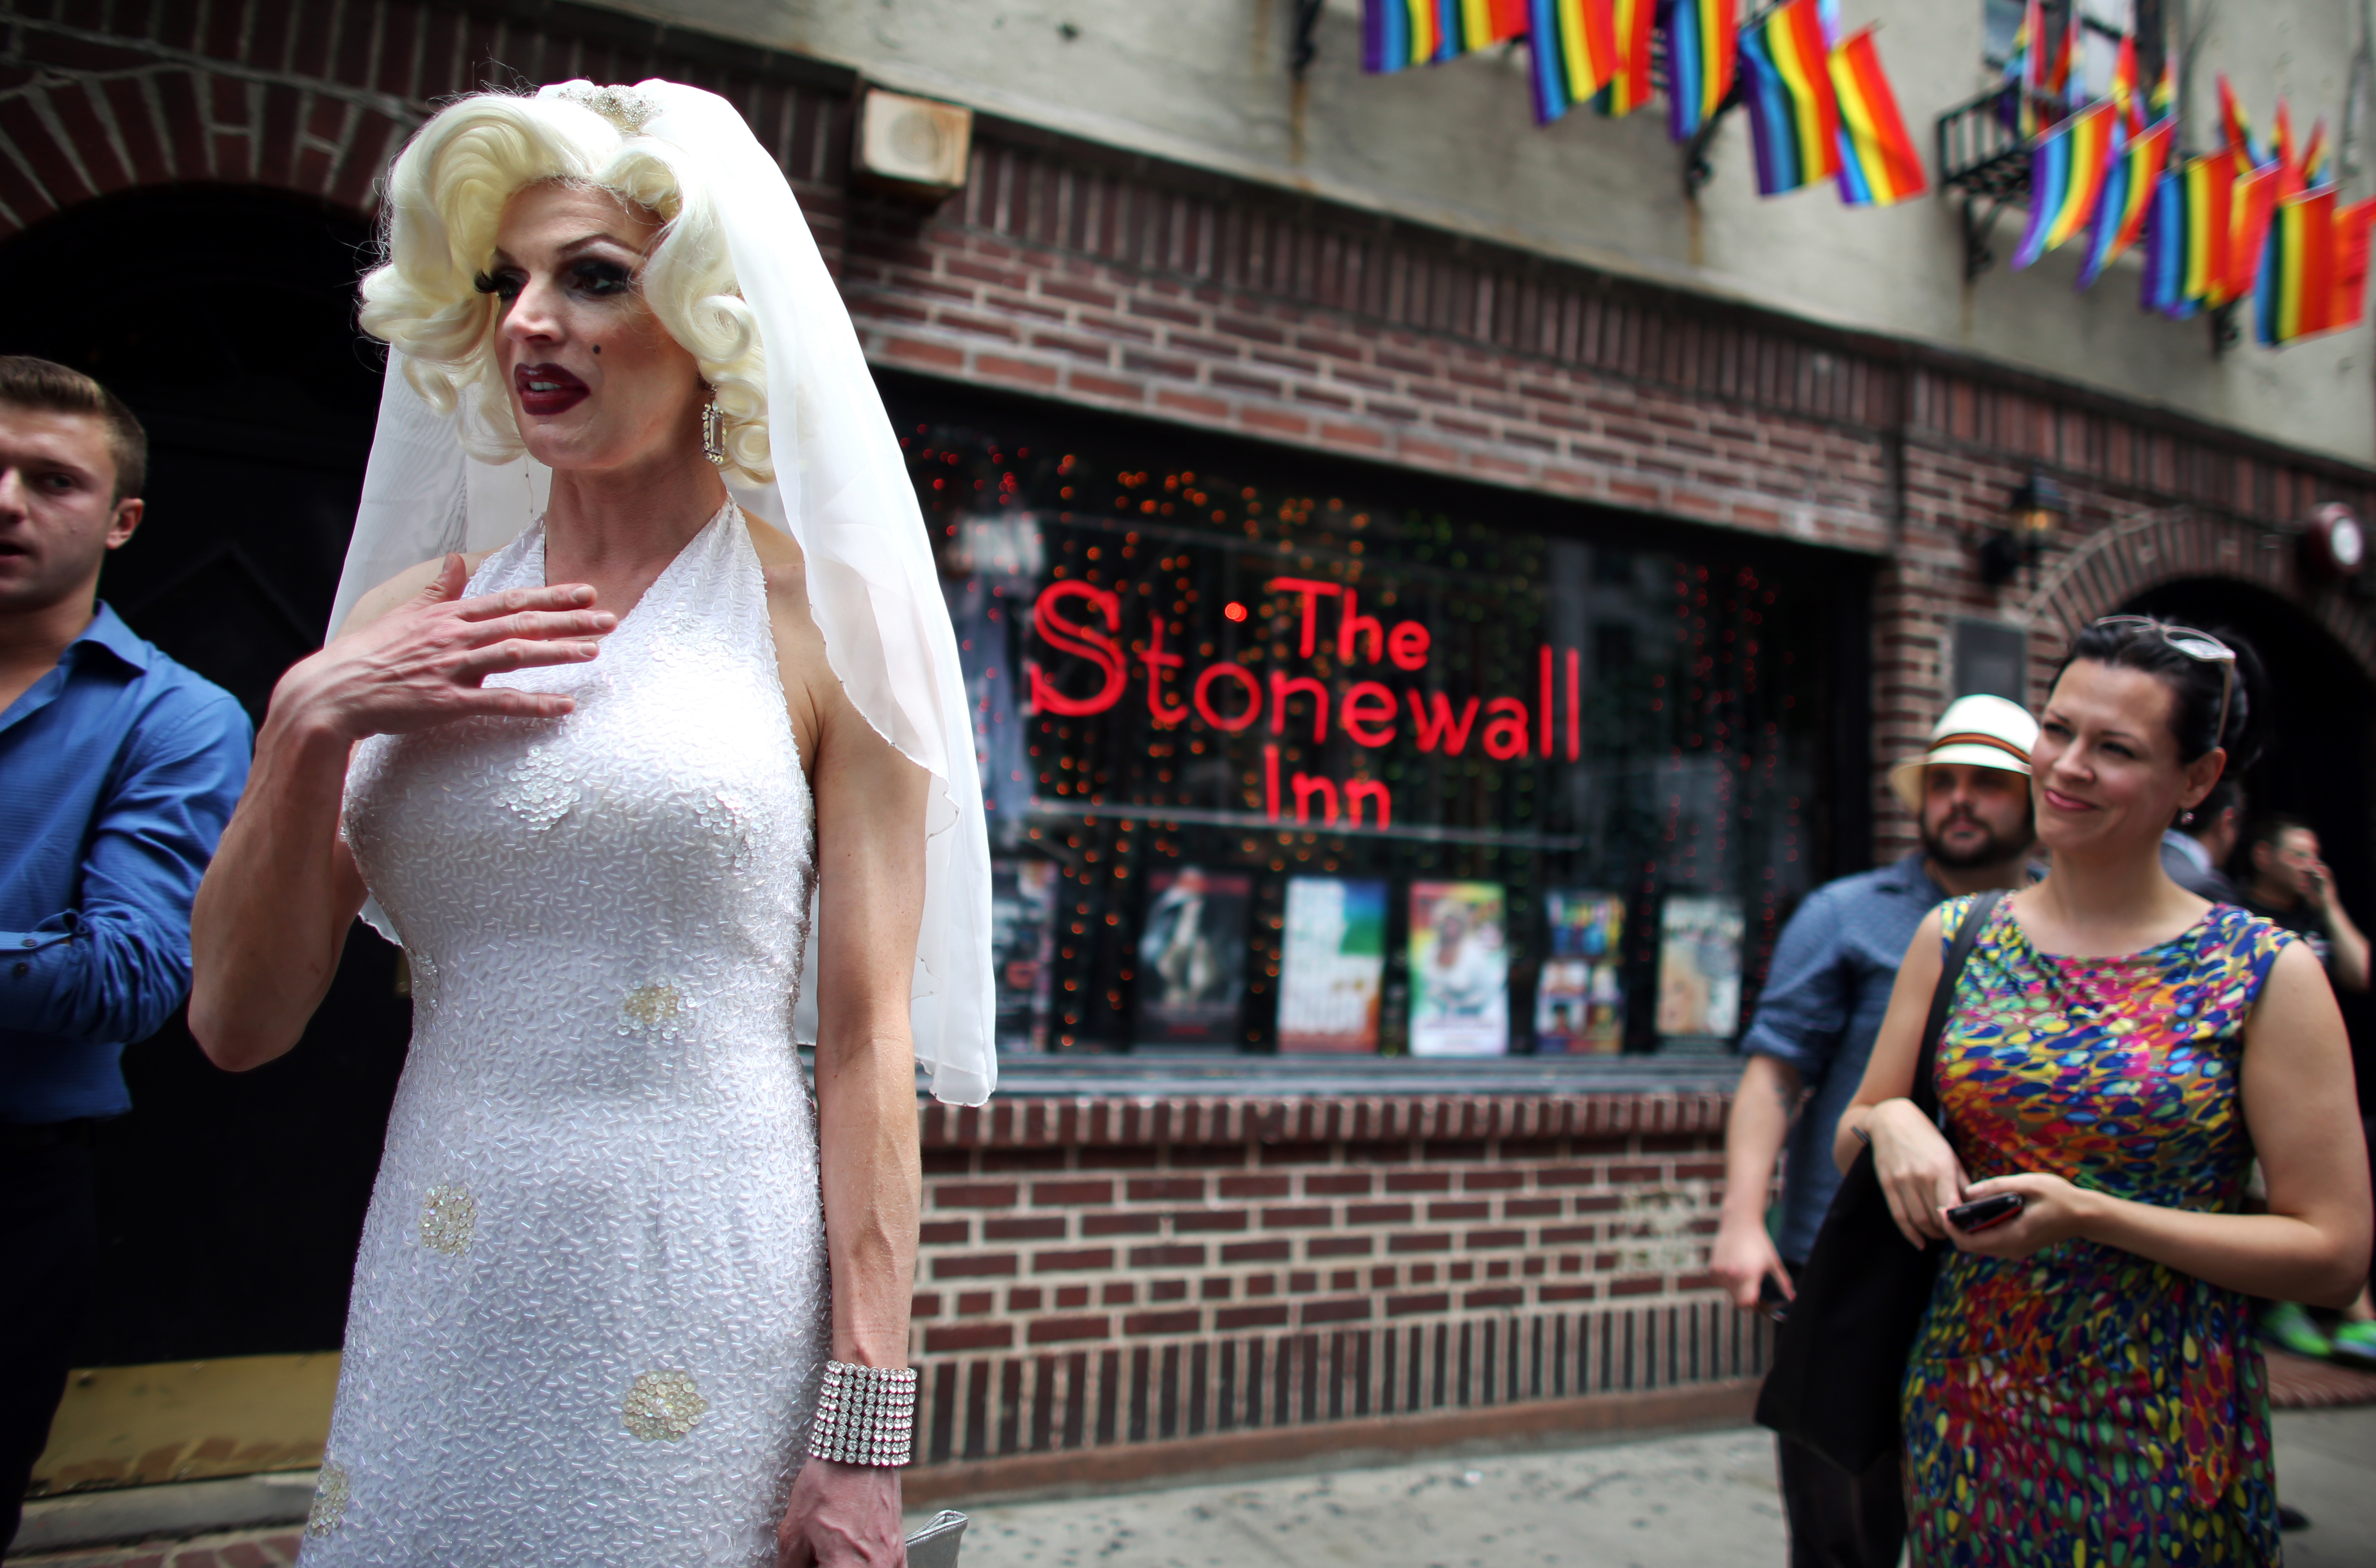 Carlotta Gurl, a gay rights activist from Vancouver, Canada, chats outside of the Stonewall Inn, an iconic gay bar recently granted historic landmark status, on June 26, 2015 in the West Village neighborhood in New York City.